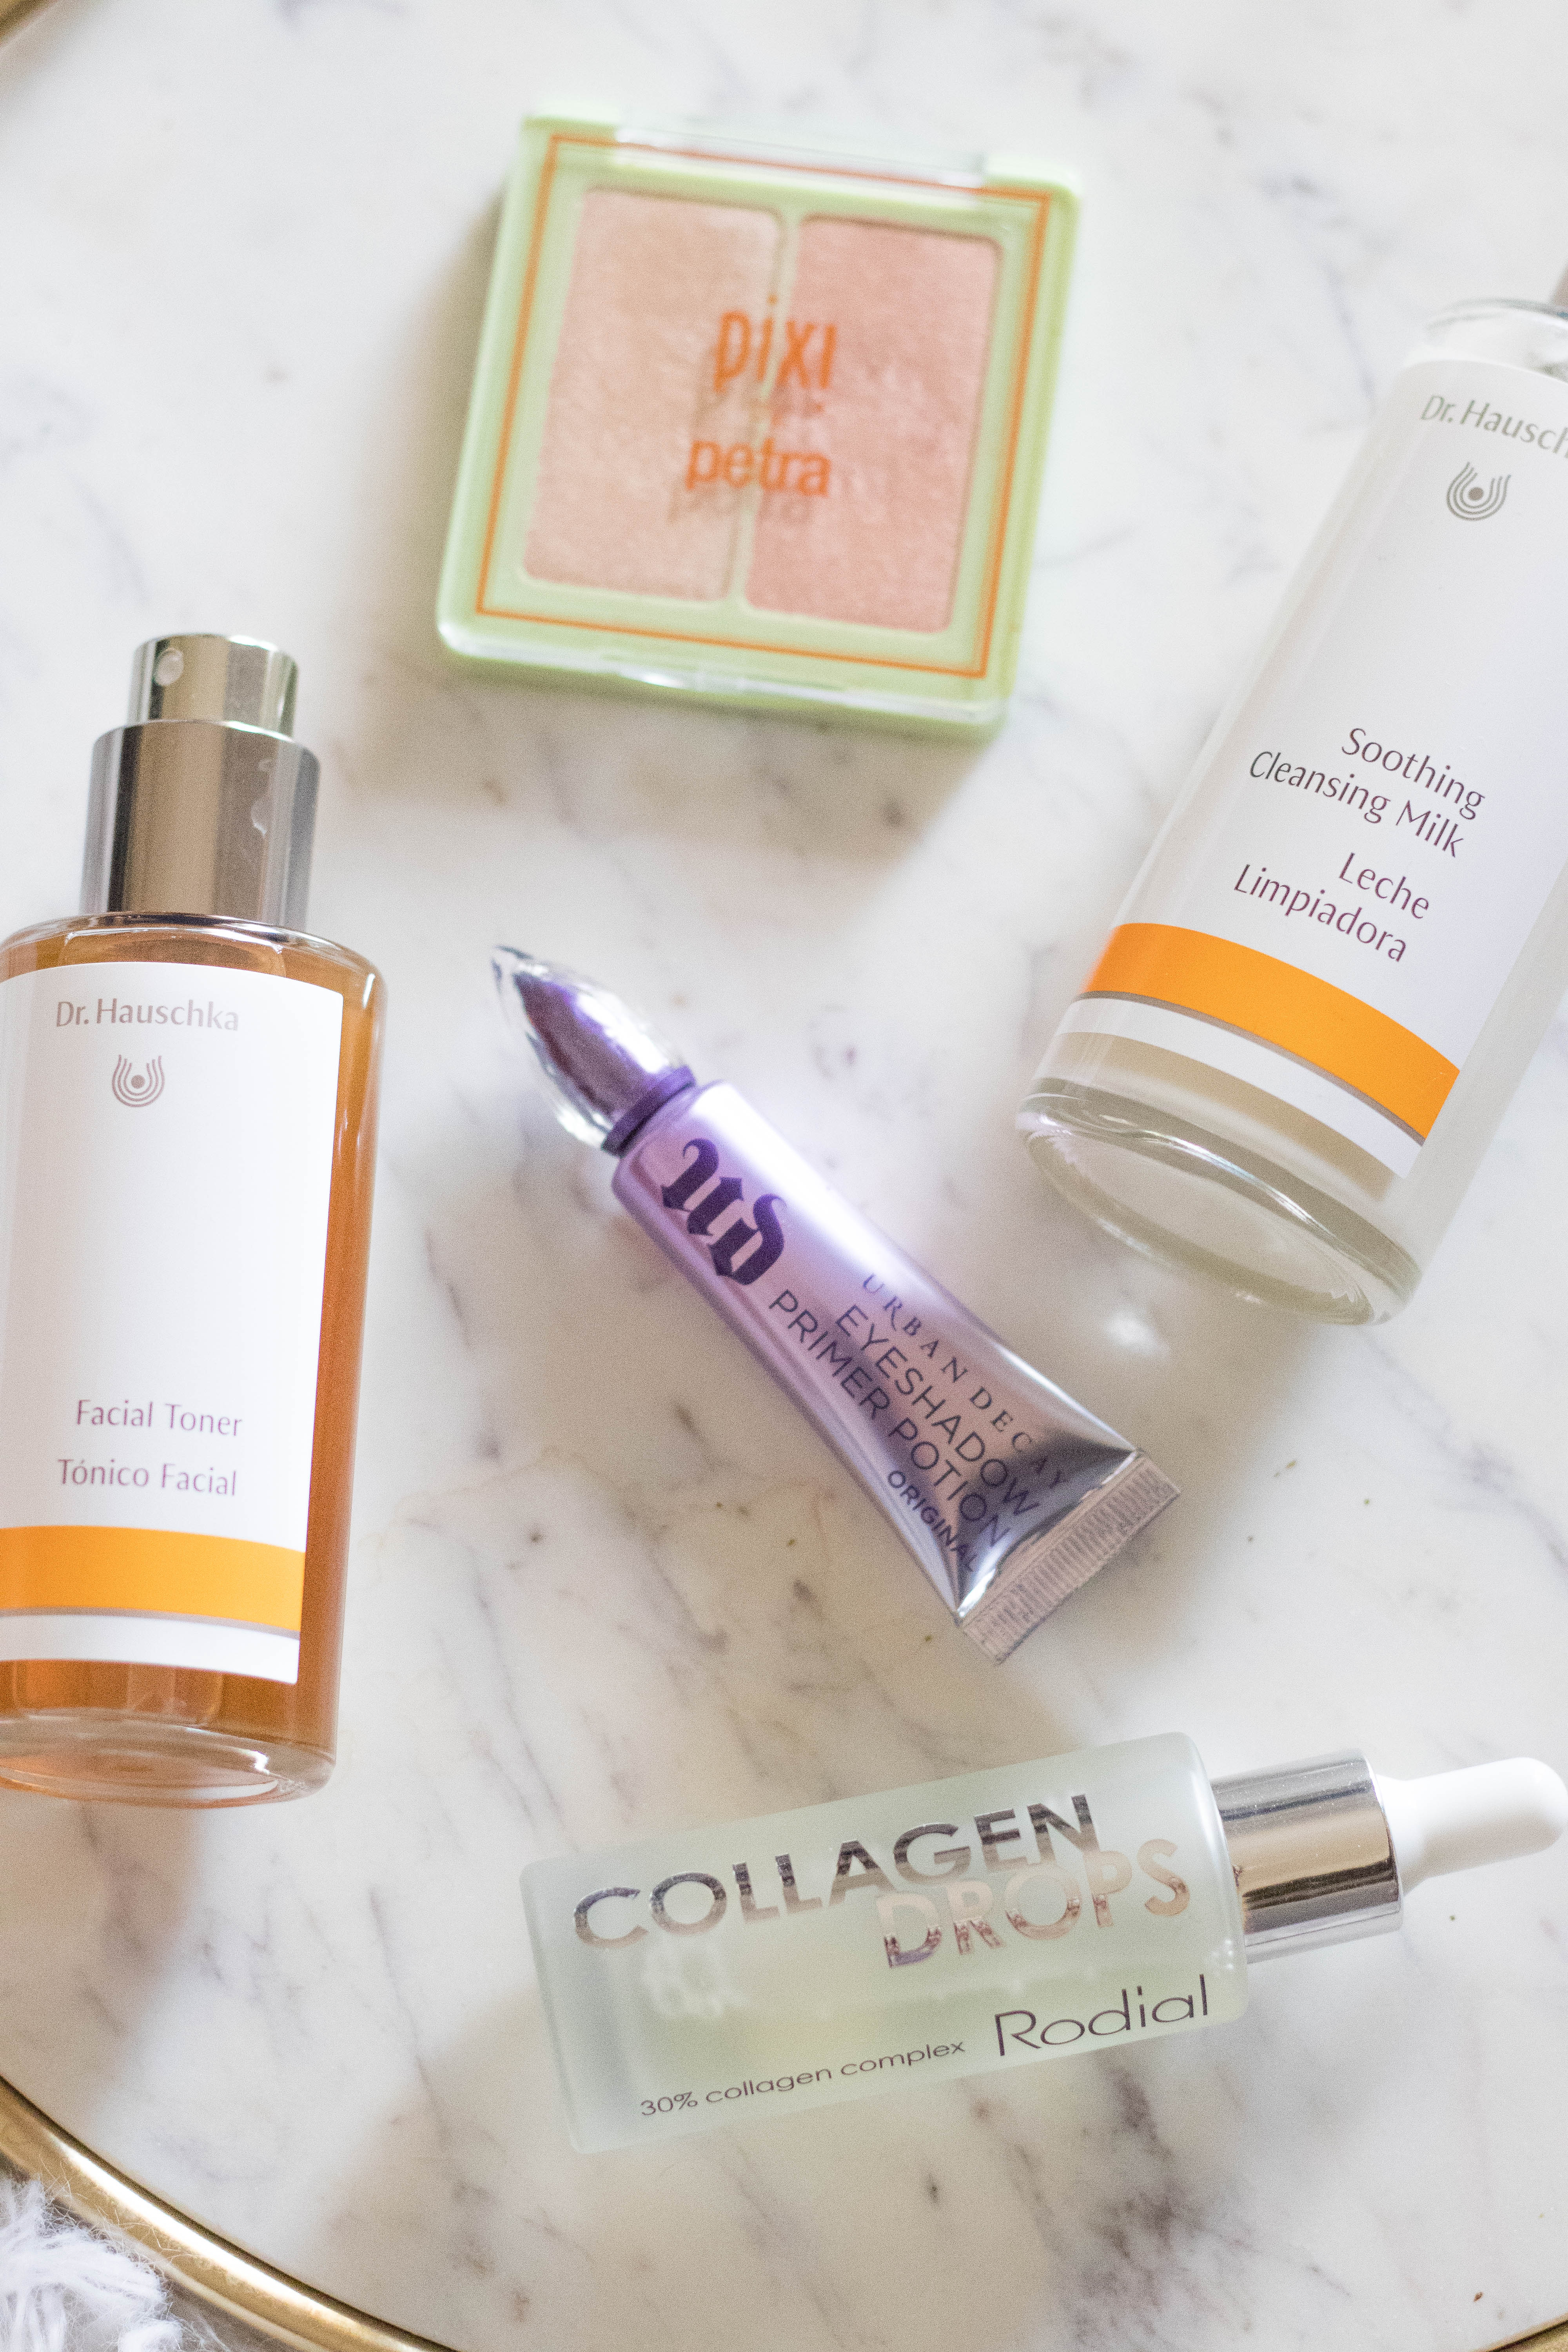 september beauty hits and misses #skincare #beautyfavorites #cleanbeauty